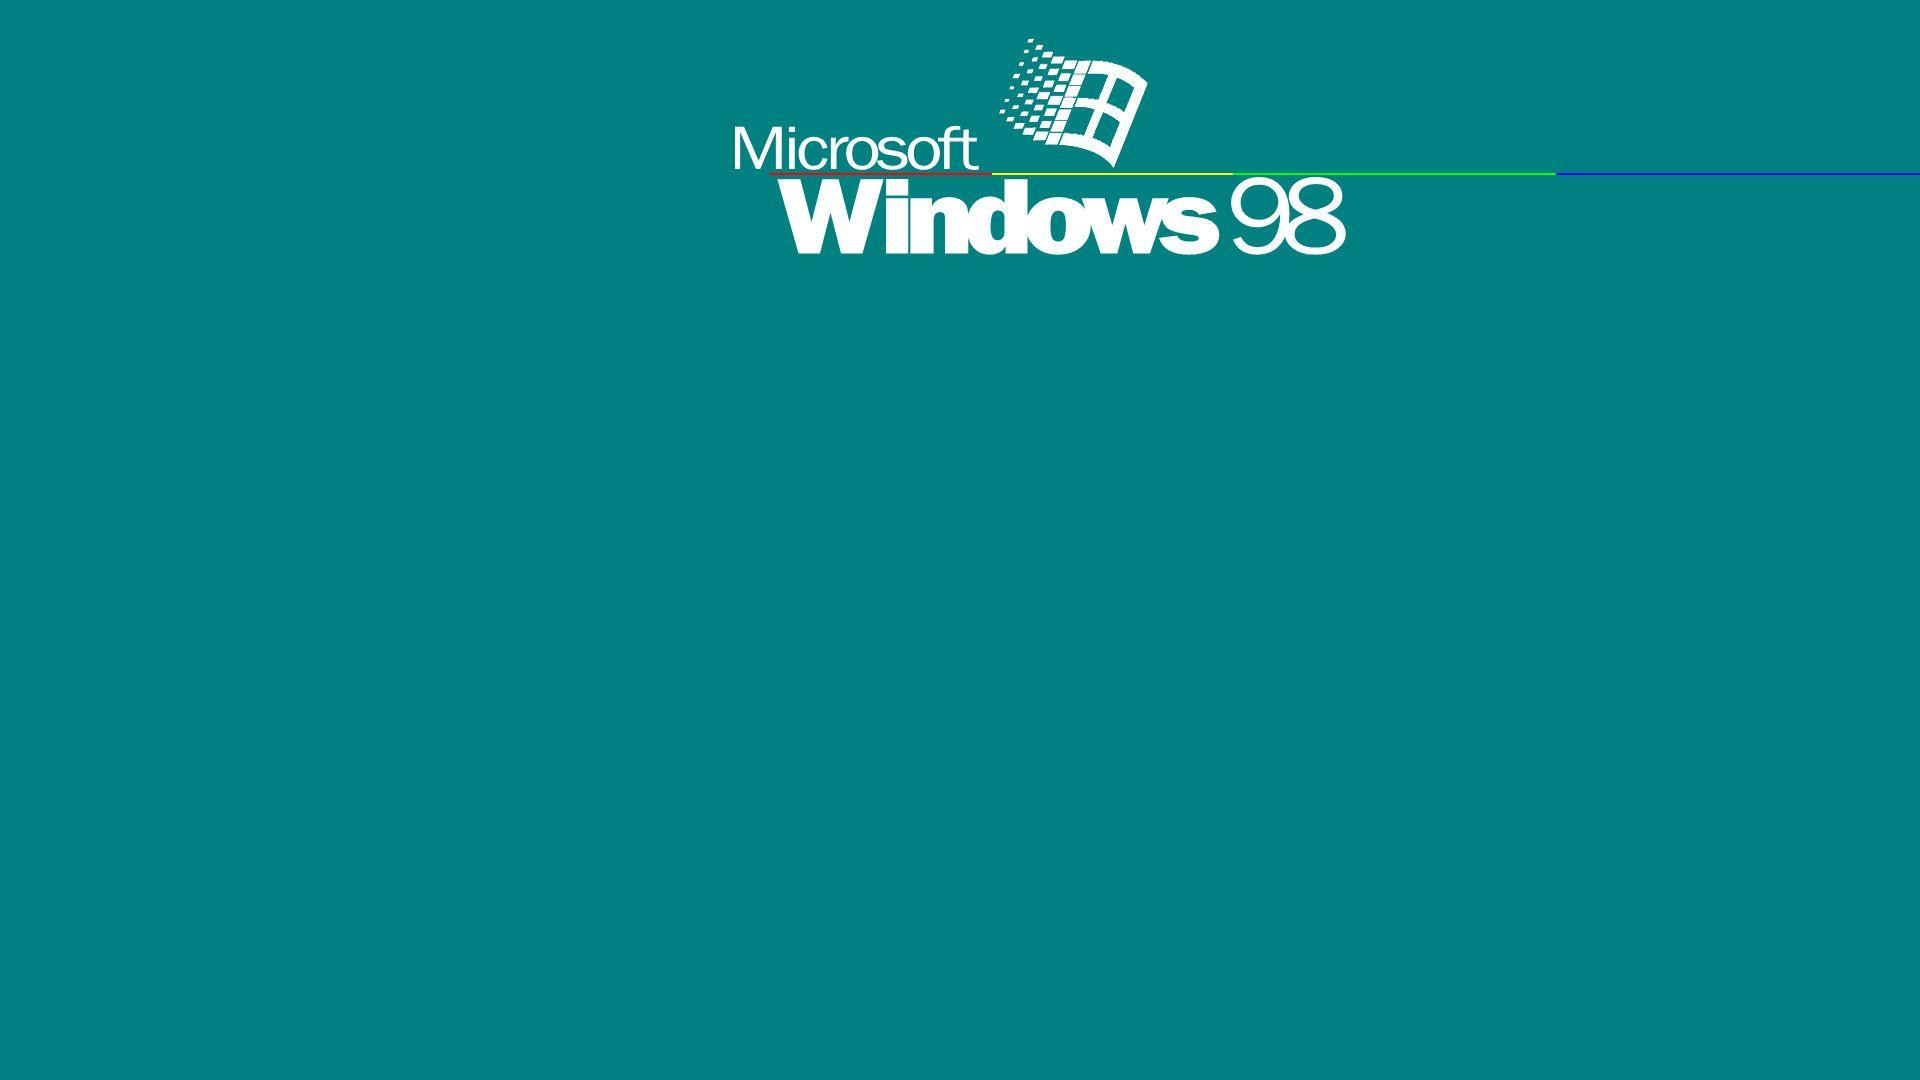 Windows 98 Wallpapers Pack Wallpaper Cave